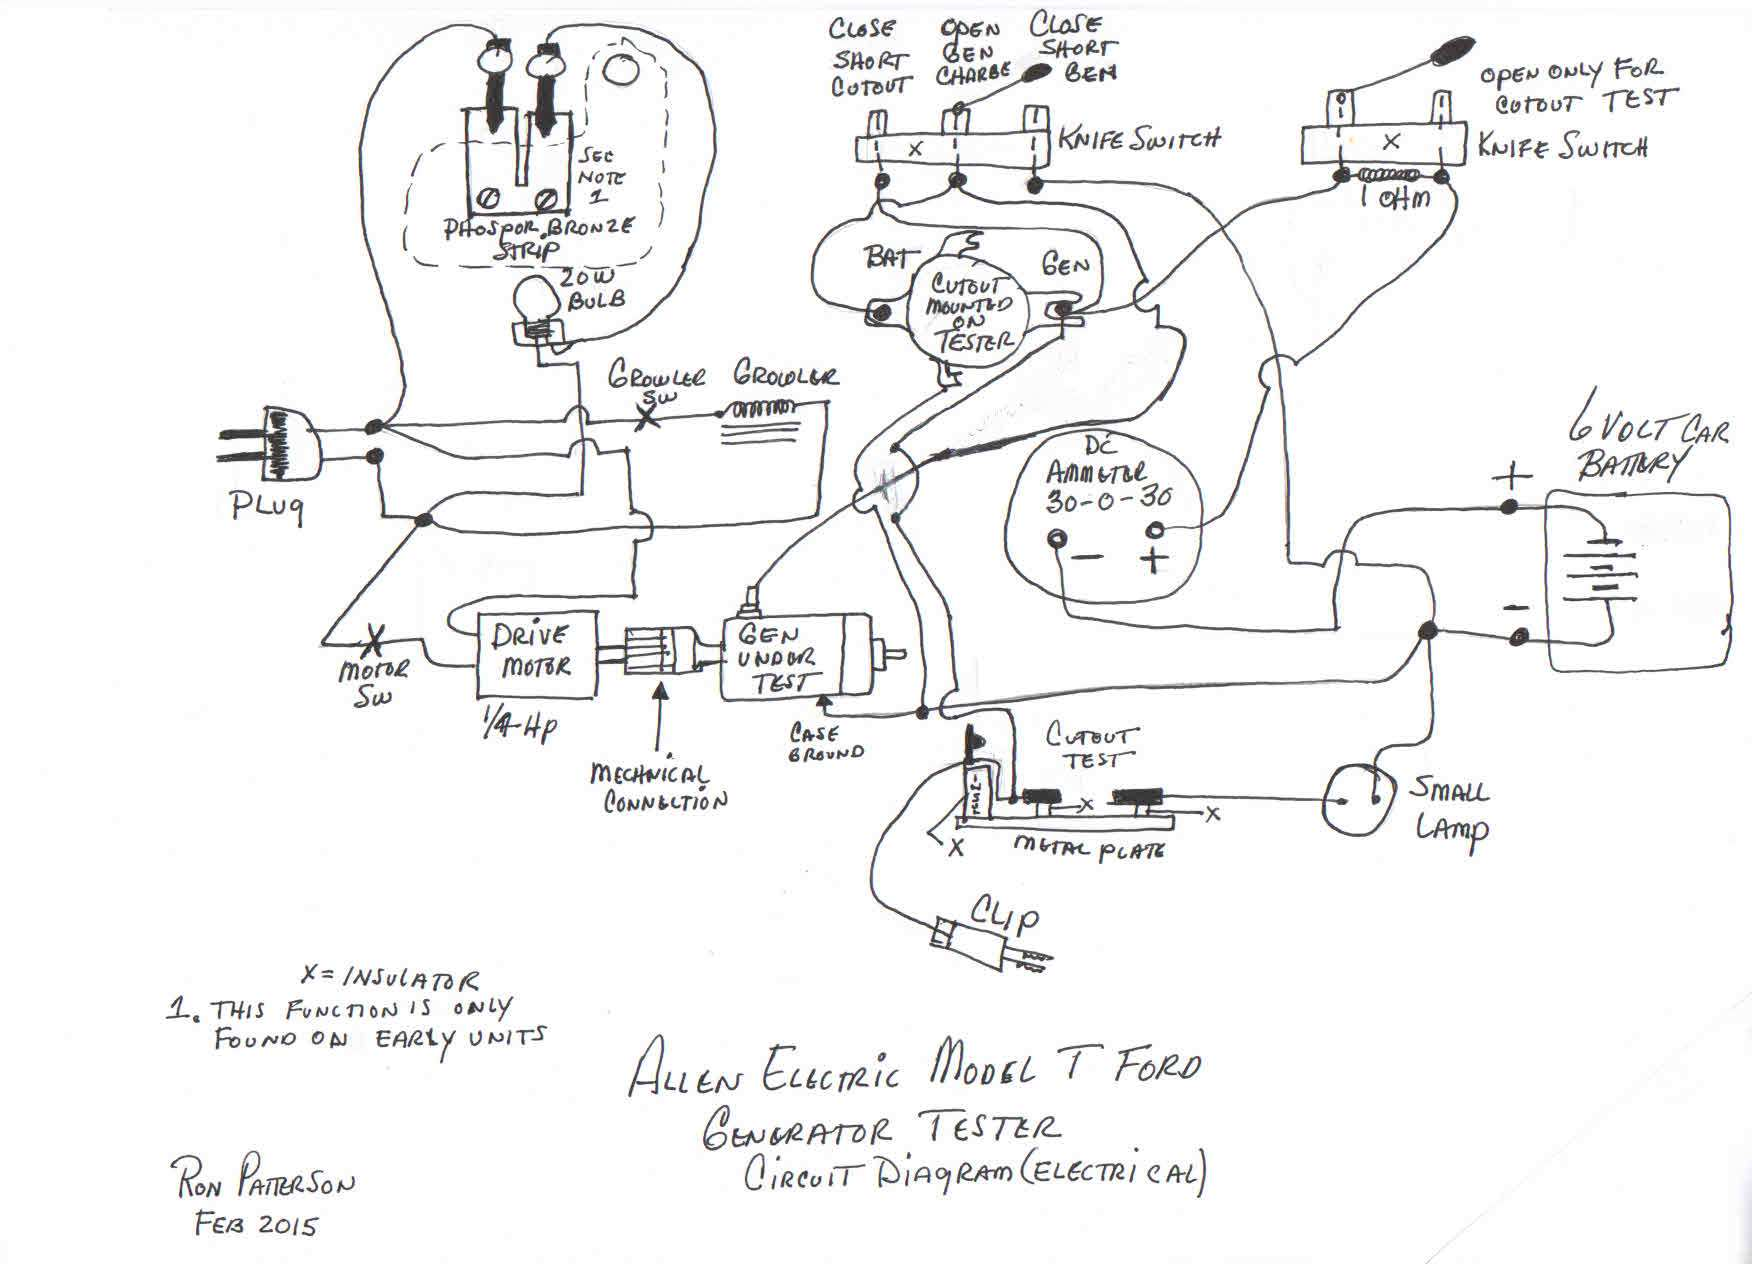 1925 ford model t wiring diagram html